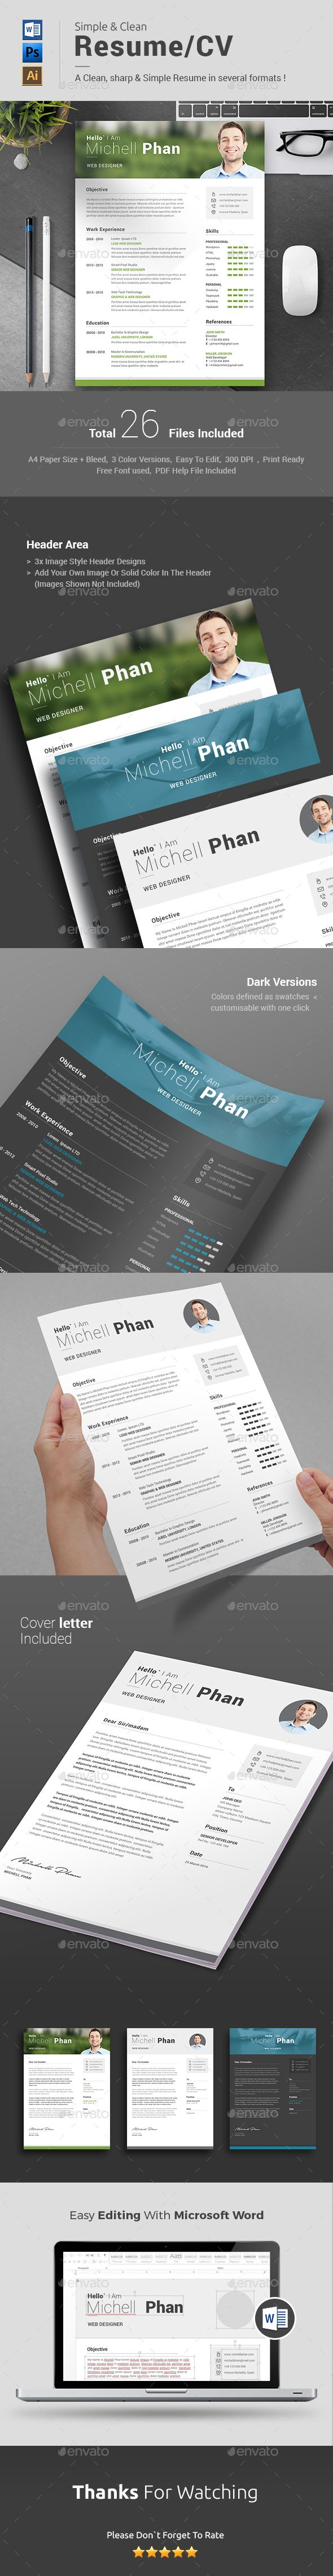 resume template word is hard to find but this particular word resume template design is modern - Resume Template For Word